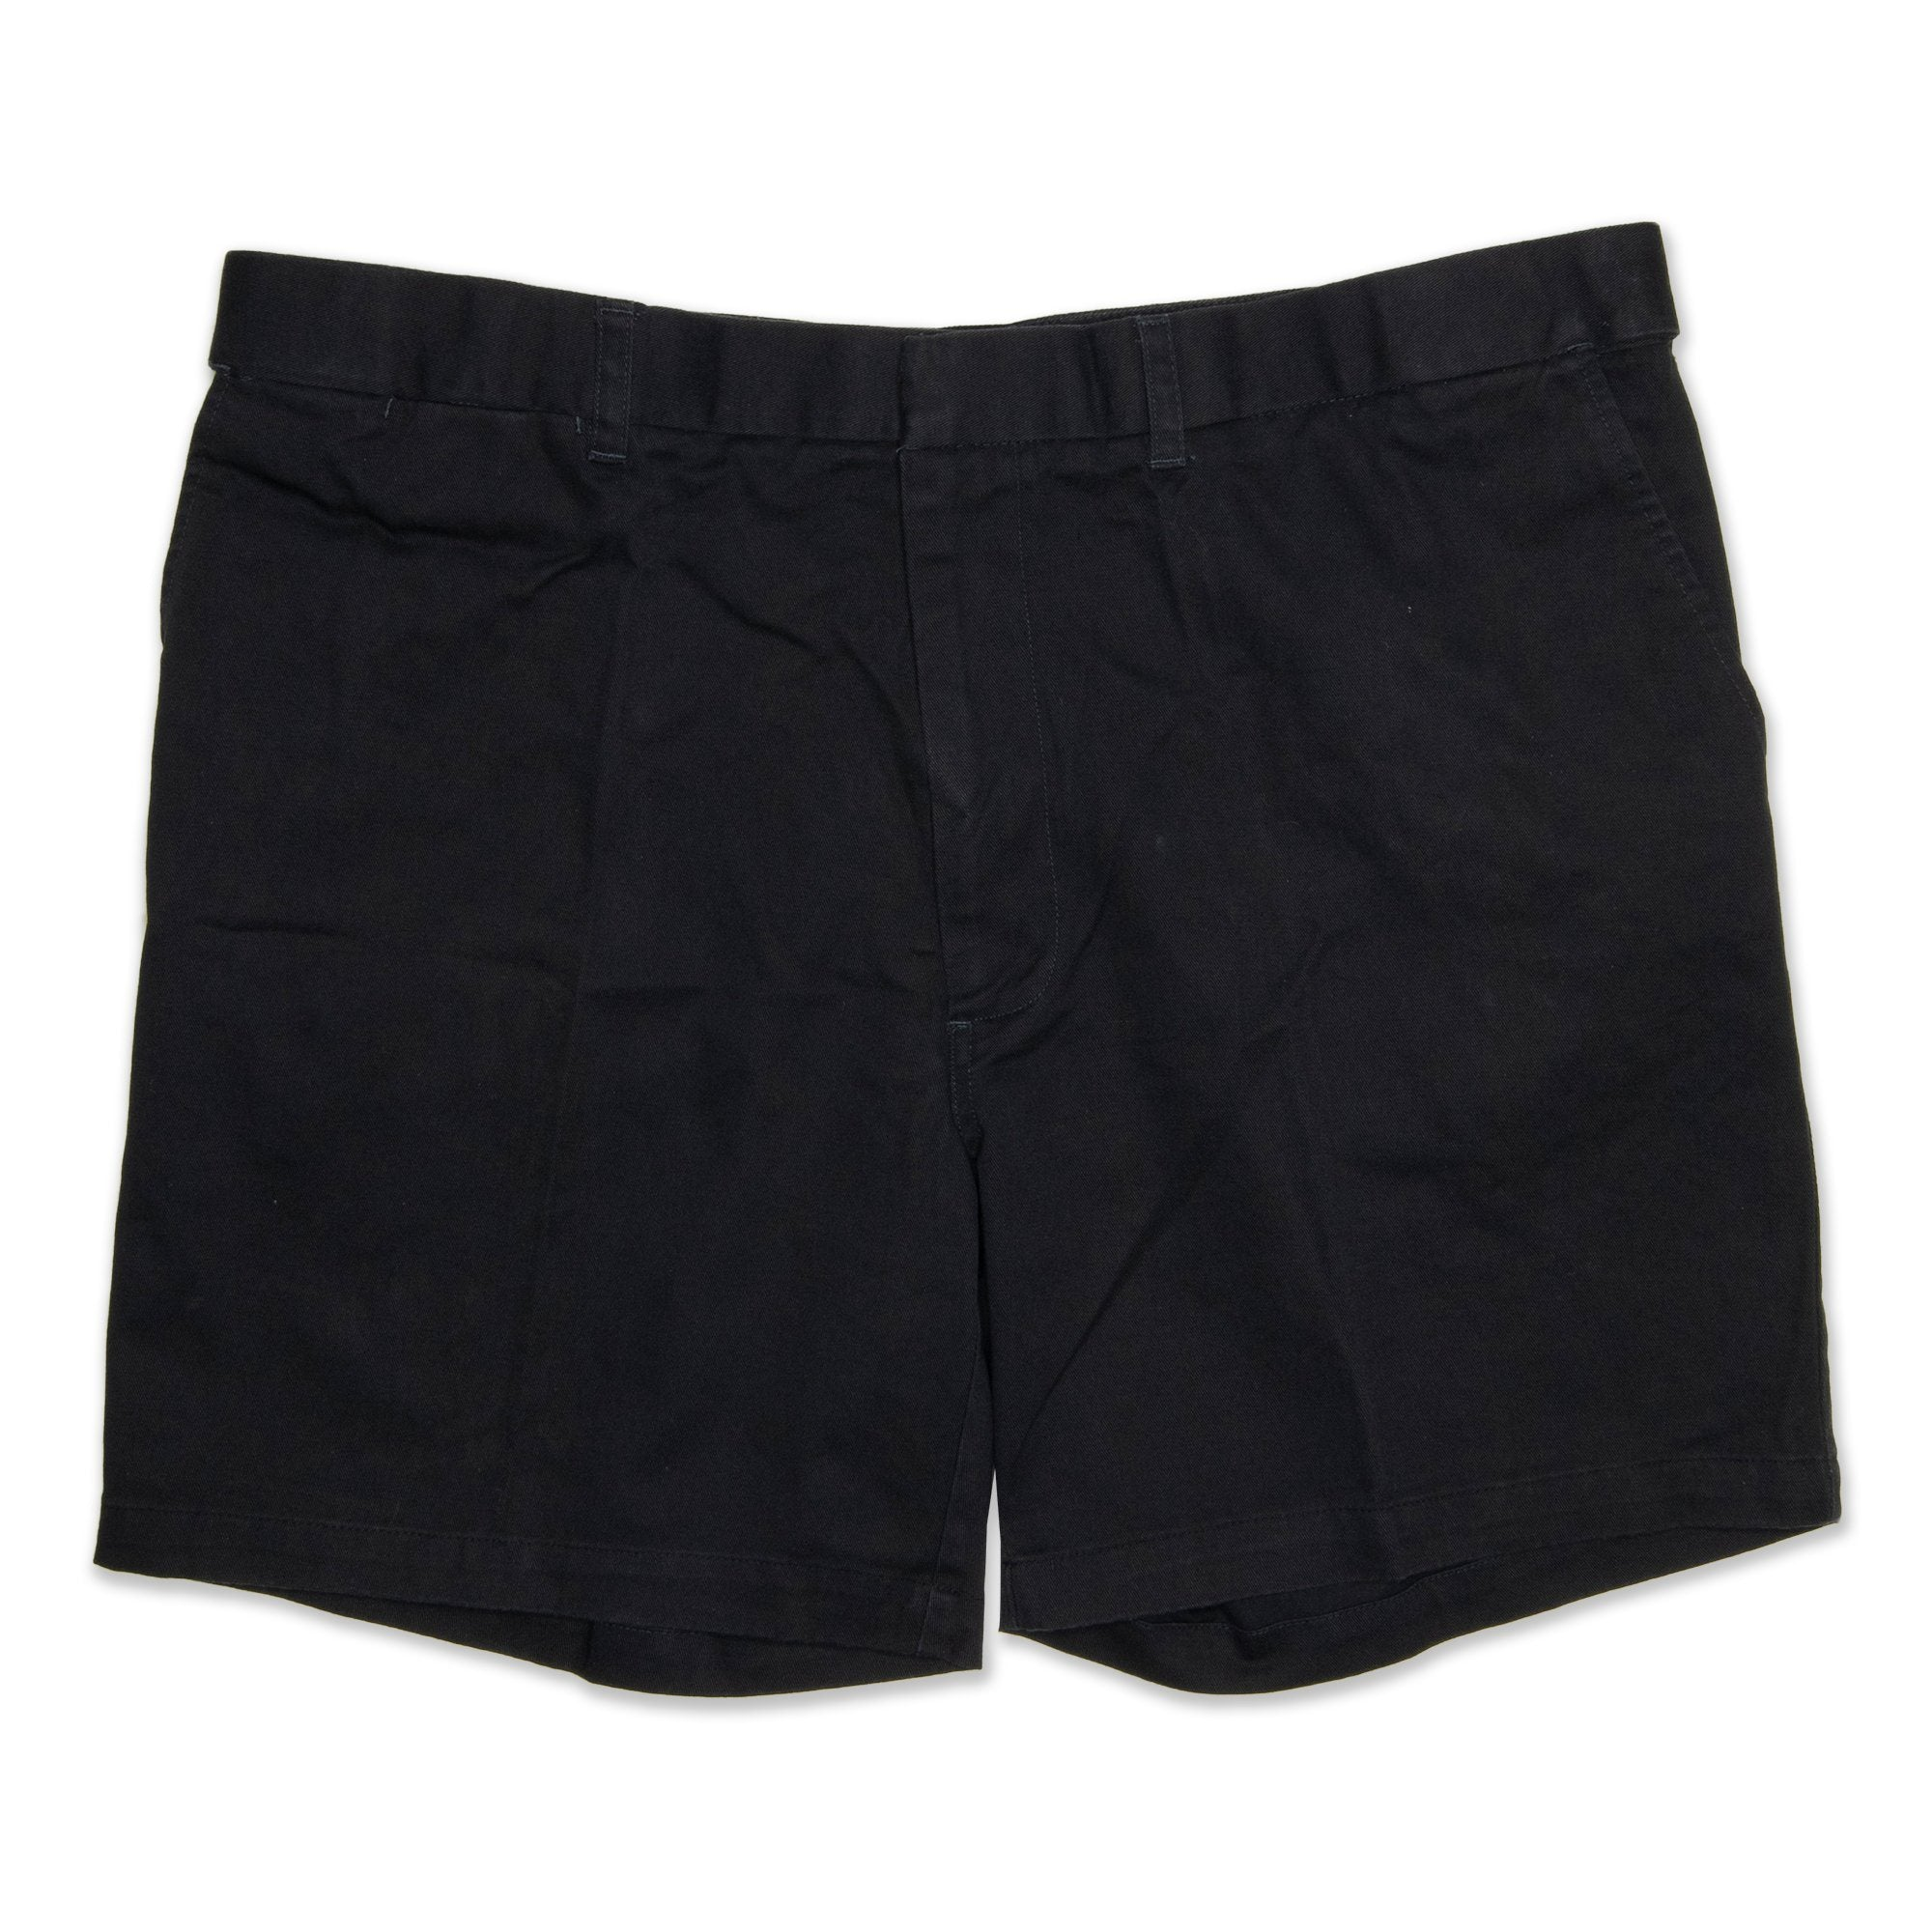 Weekenders Adjustable Waistband Mens Shorts -Black Workwear Weekenders